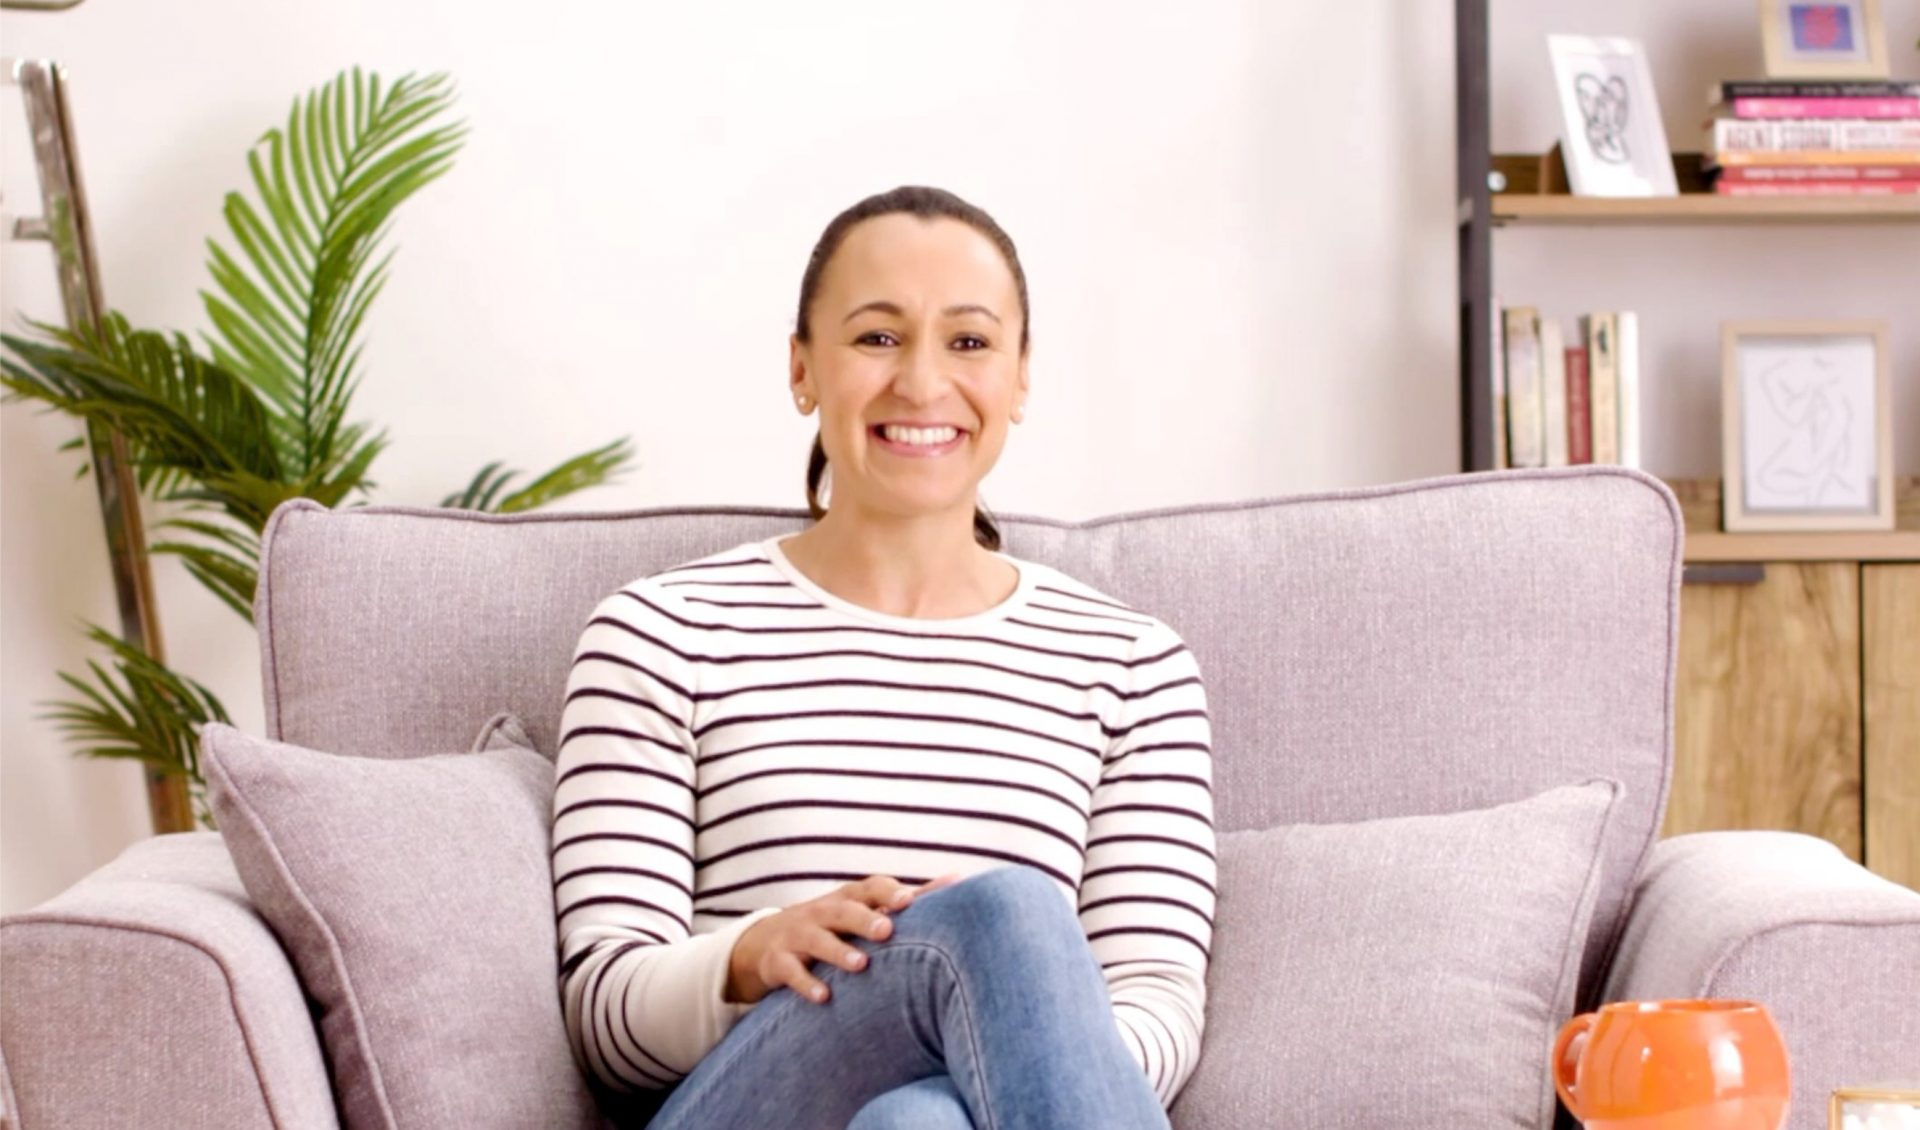 Five minutes with Dame Jessica Ennis-Hill – on balance, pre-bed meditation and maintaining fitness